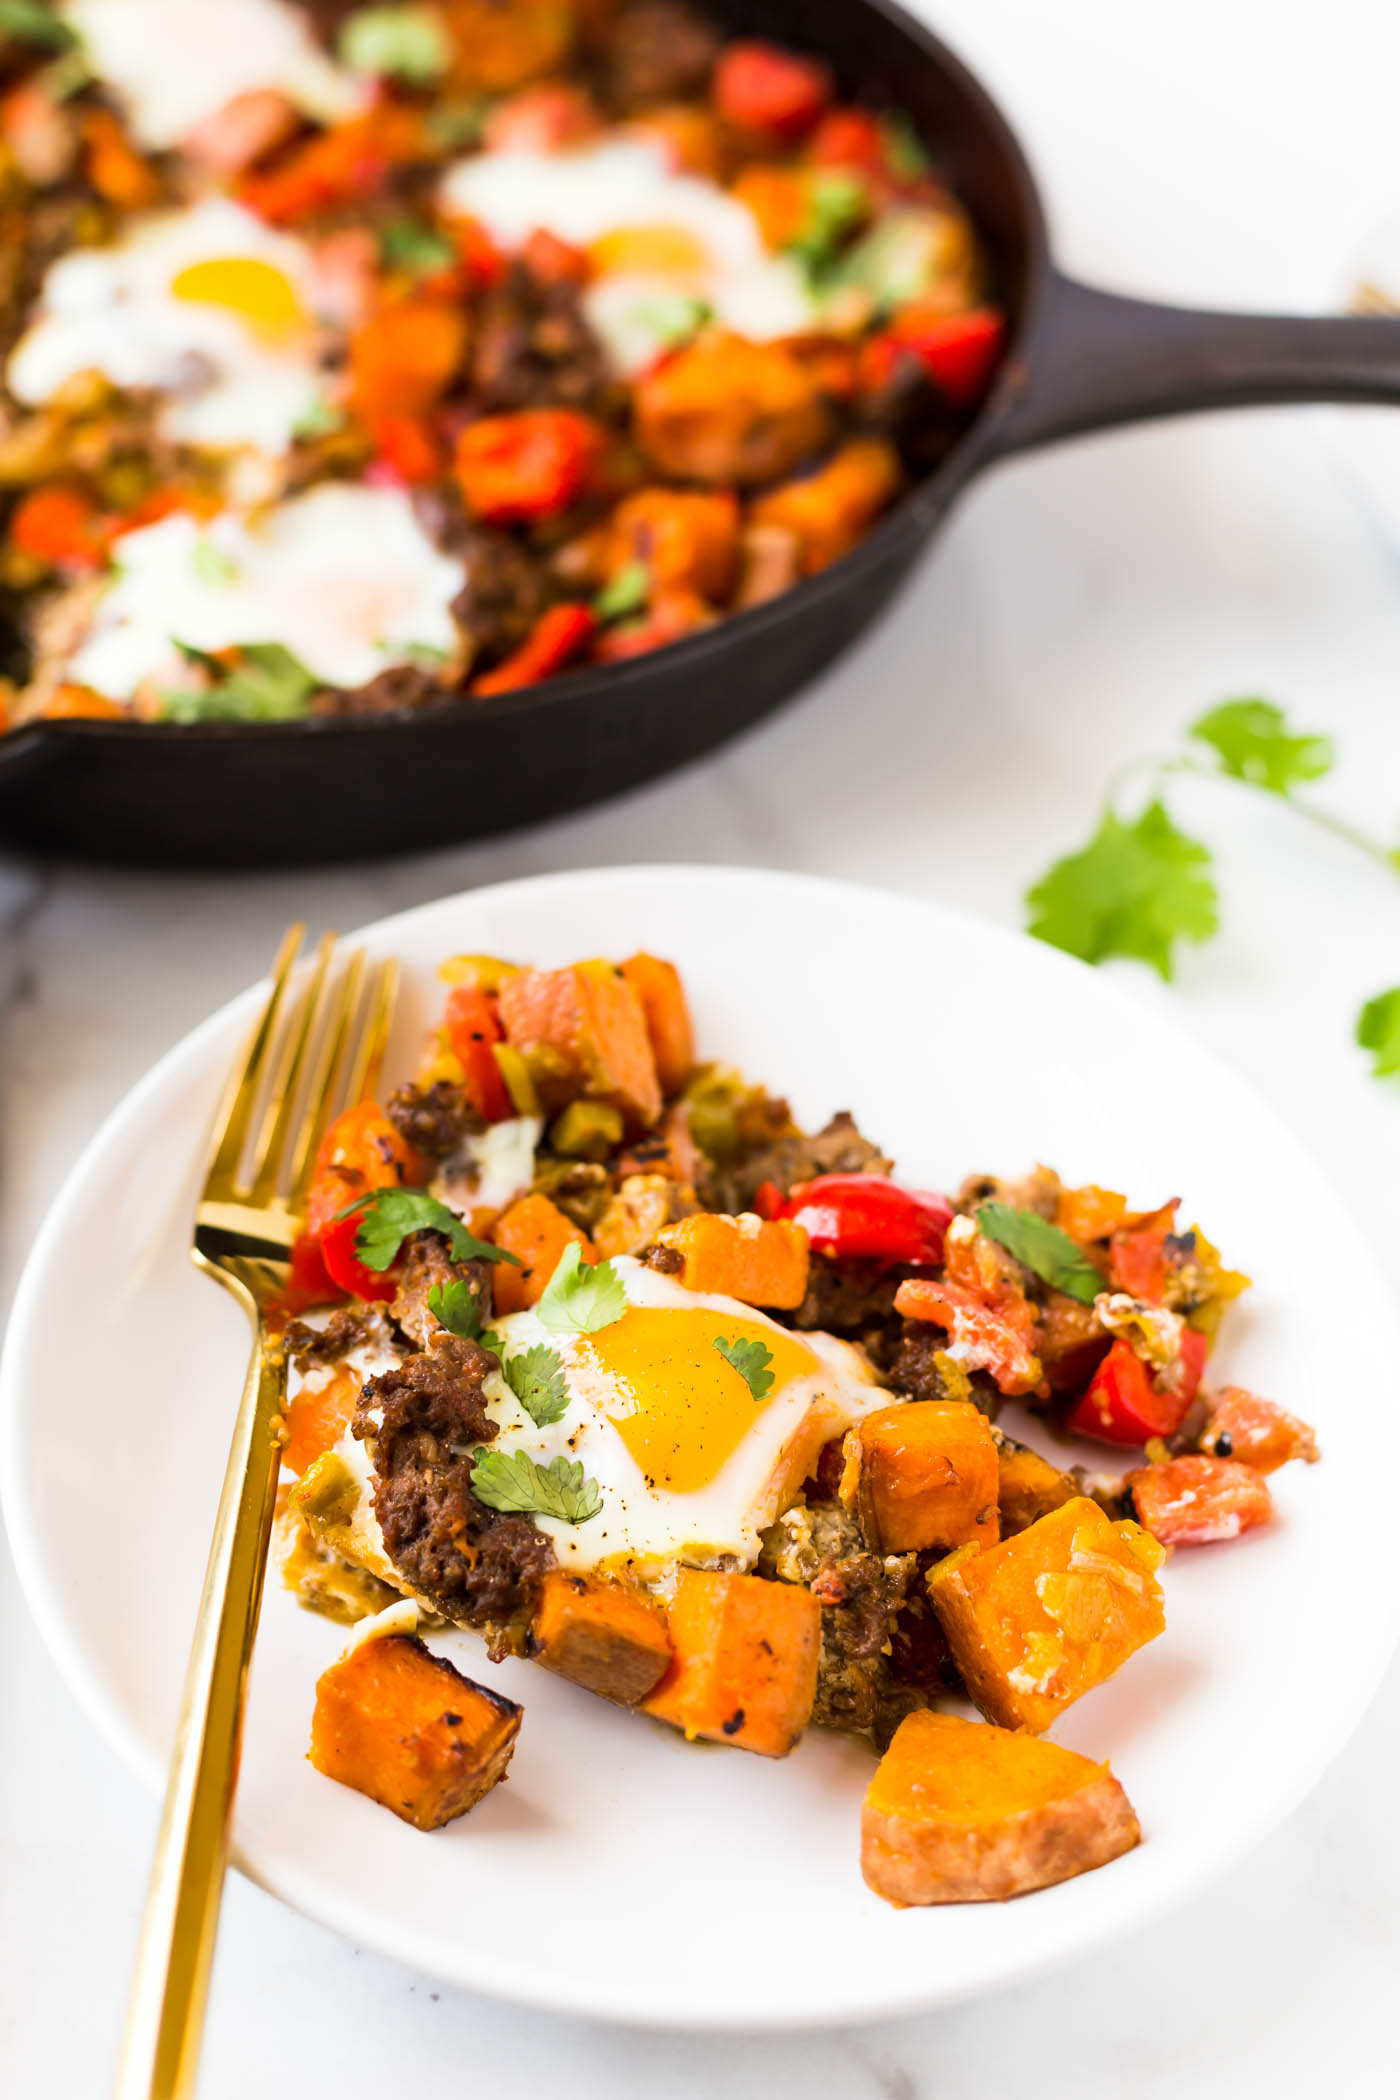 Sweet potato breakfast hash with sausage on white plate with gold fork in front of cast iron skillet